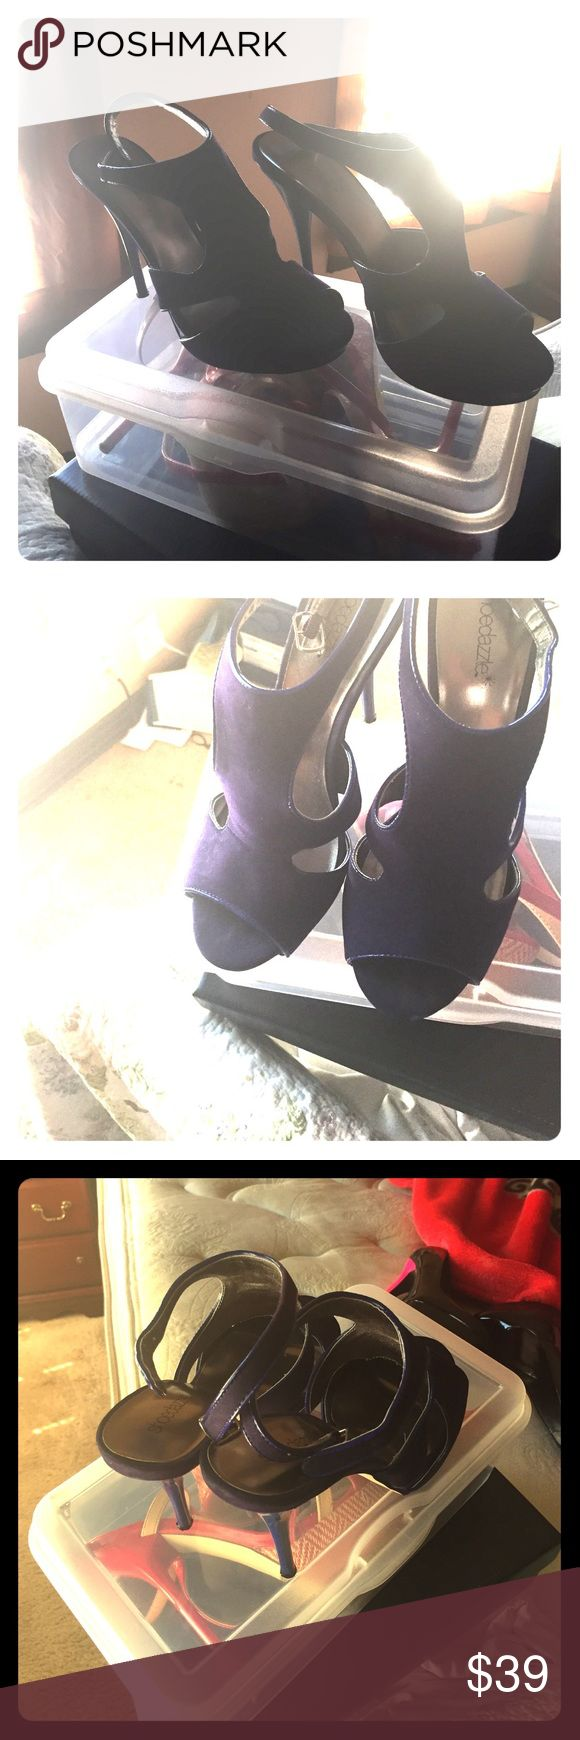 Shoes Nice blue-sh-dark purple hing heels 👠!!  Good for any date-night or formal. Size 8.5 but I think it runs small because is just fit me perfectly & im size 8. Just to let you know my pretty girls & lady's. 😄 Shoes Heels